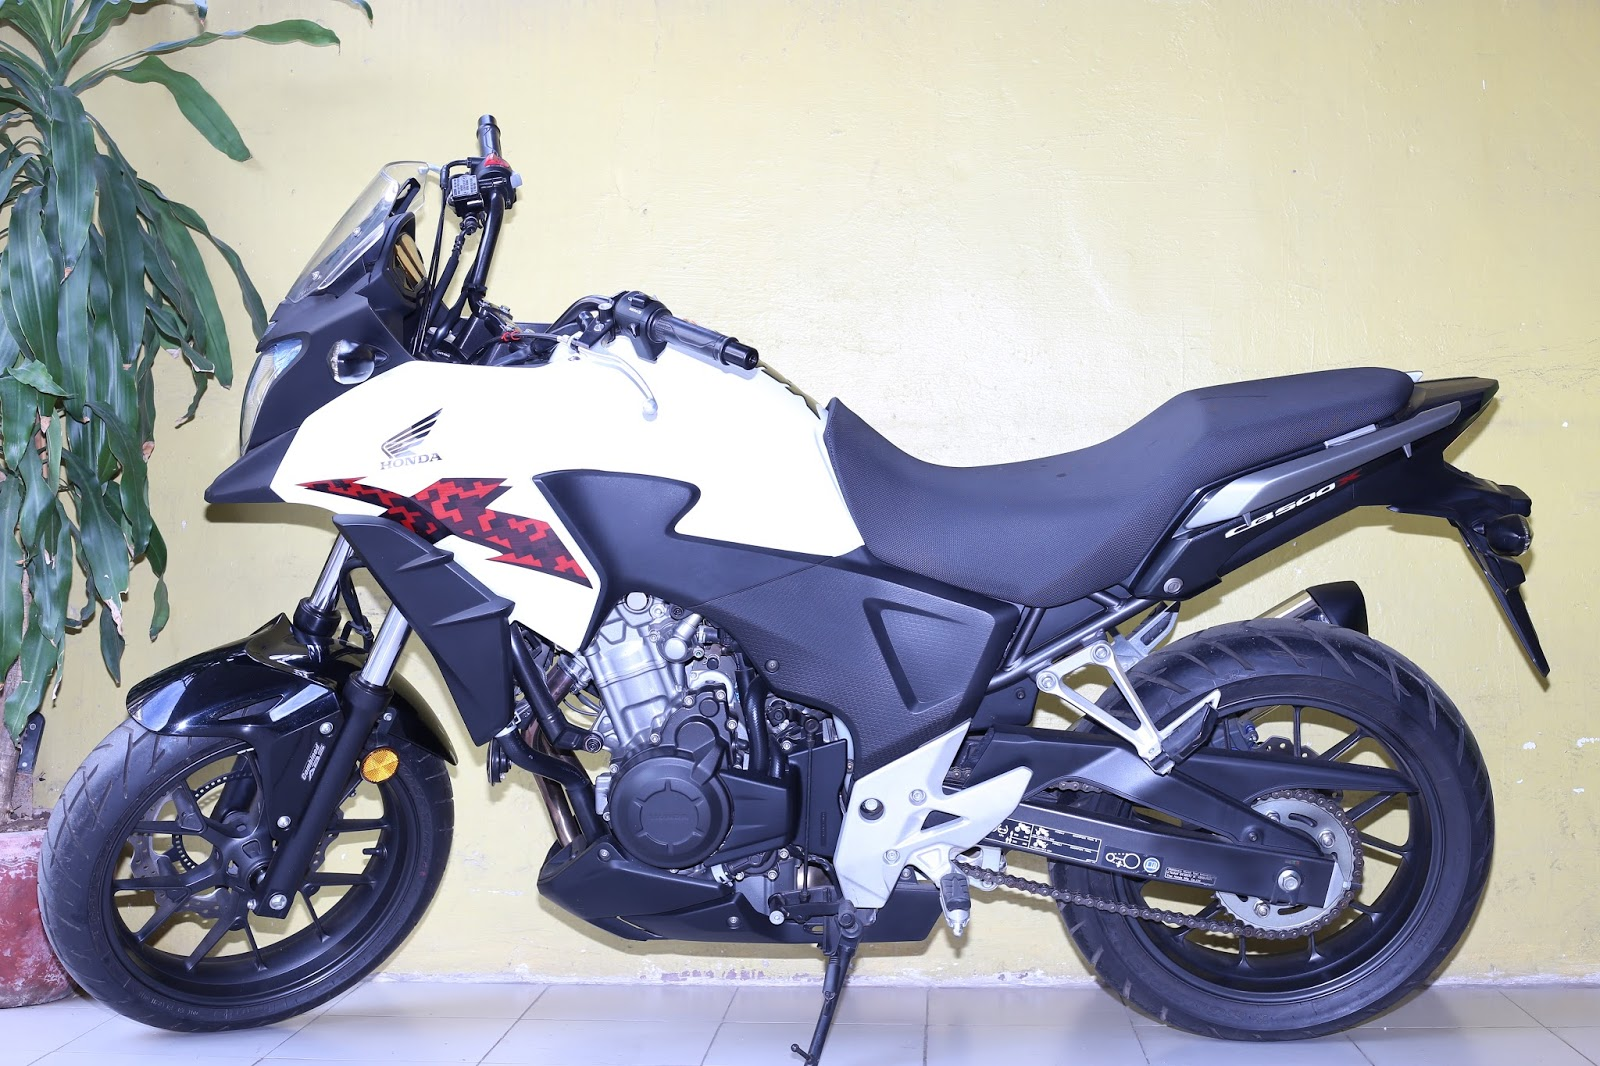 Motorbike Service Near Me >> 2014 Honda CB500x, 500cc - Cambodia Expats Online: Forum | News | Information | Blog